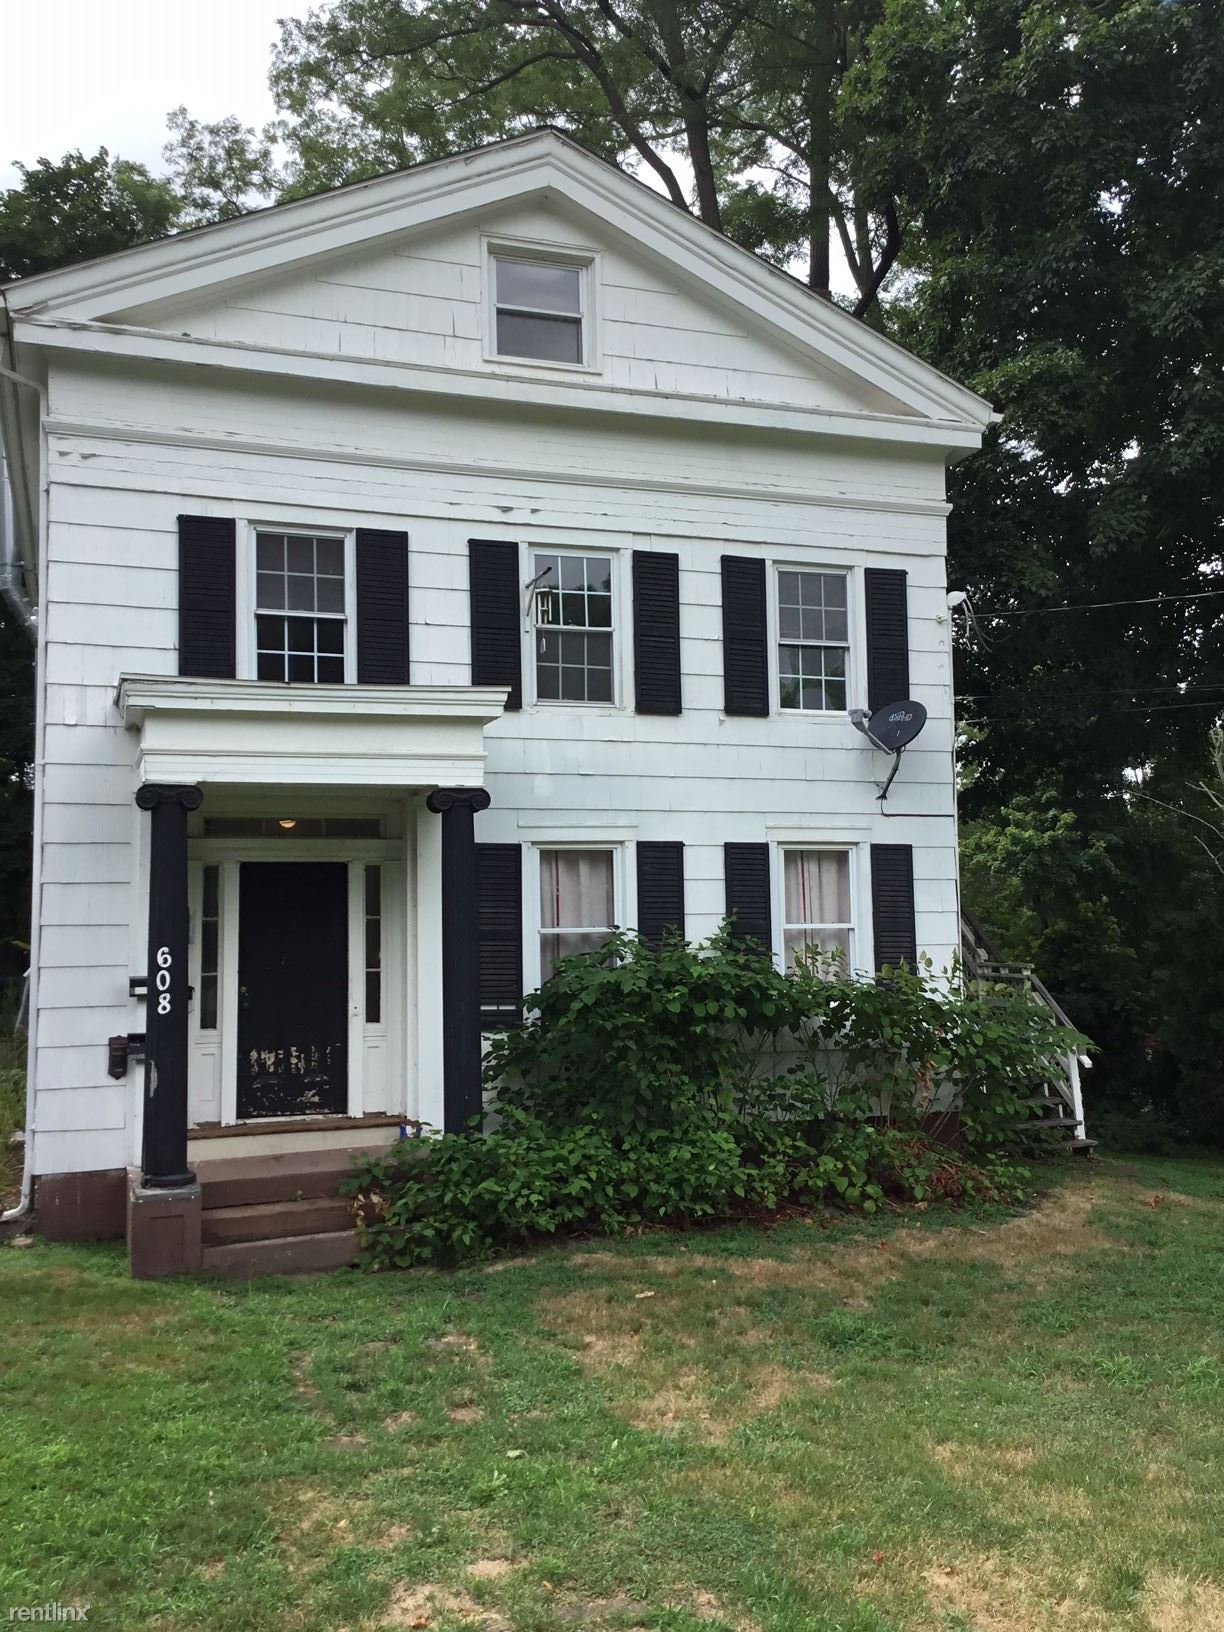 608 Main St, Portland, CT - $1,050